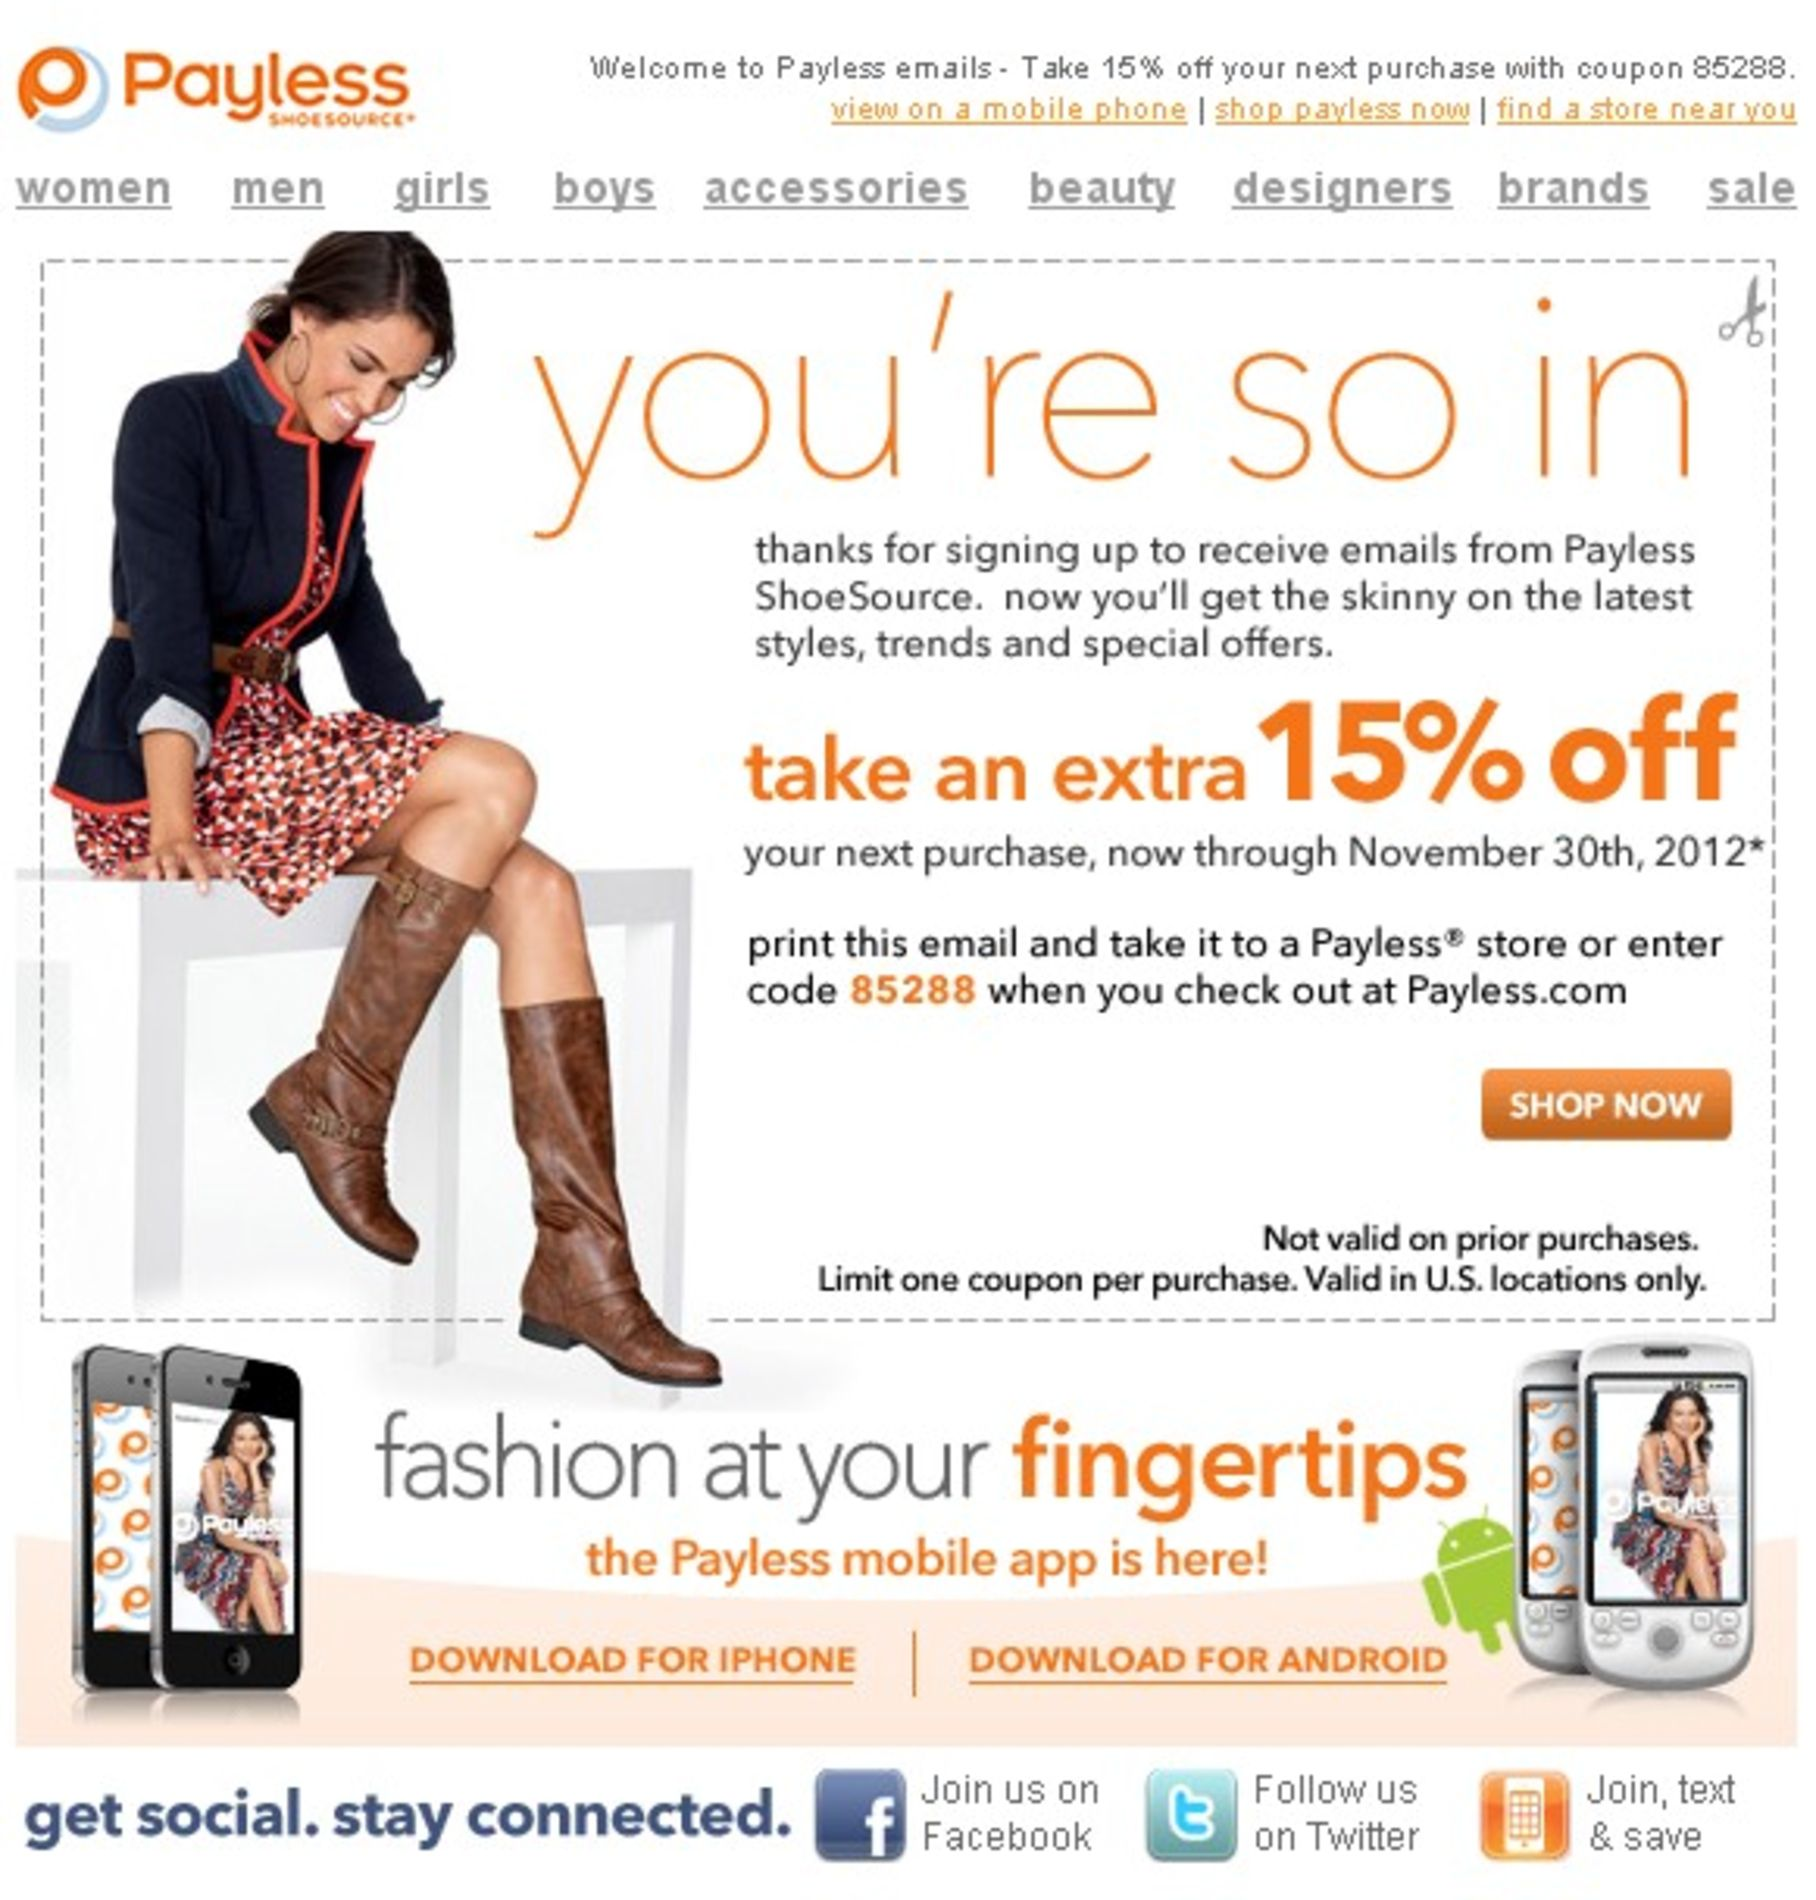 Payless Shoe Source Coupon Payless Shoesource Printable Coupons Boys Accessories